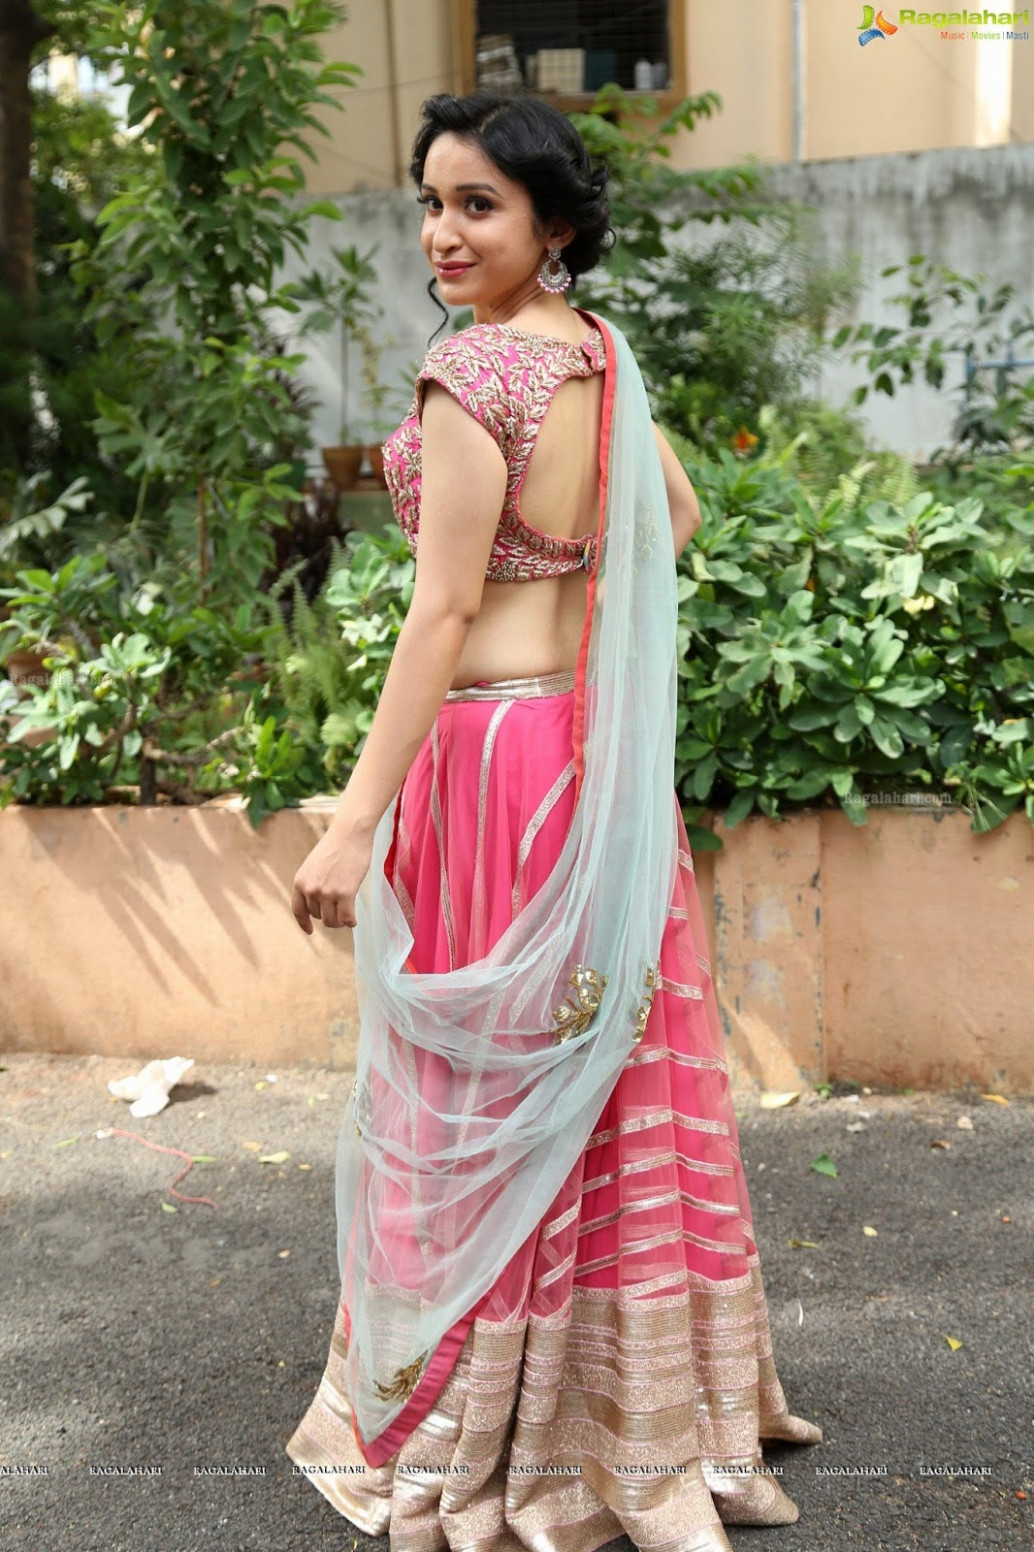 Saree Seduction: Sakshi Kakkar in pink backless blouse